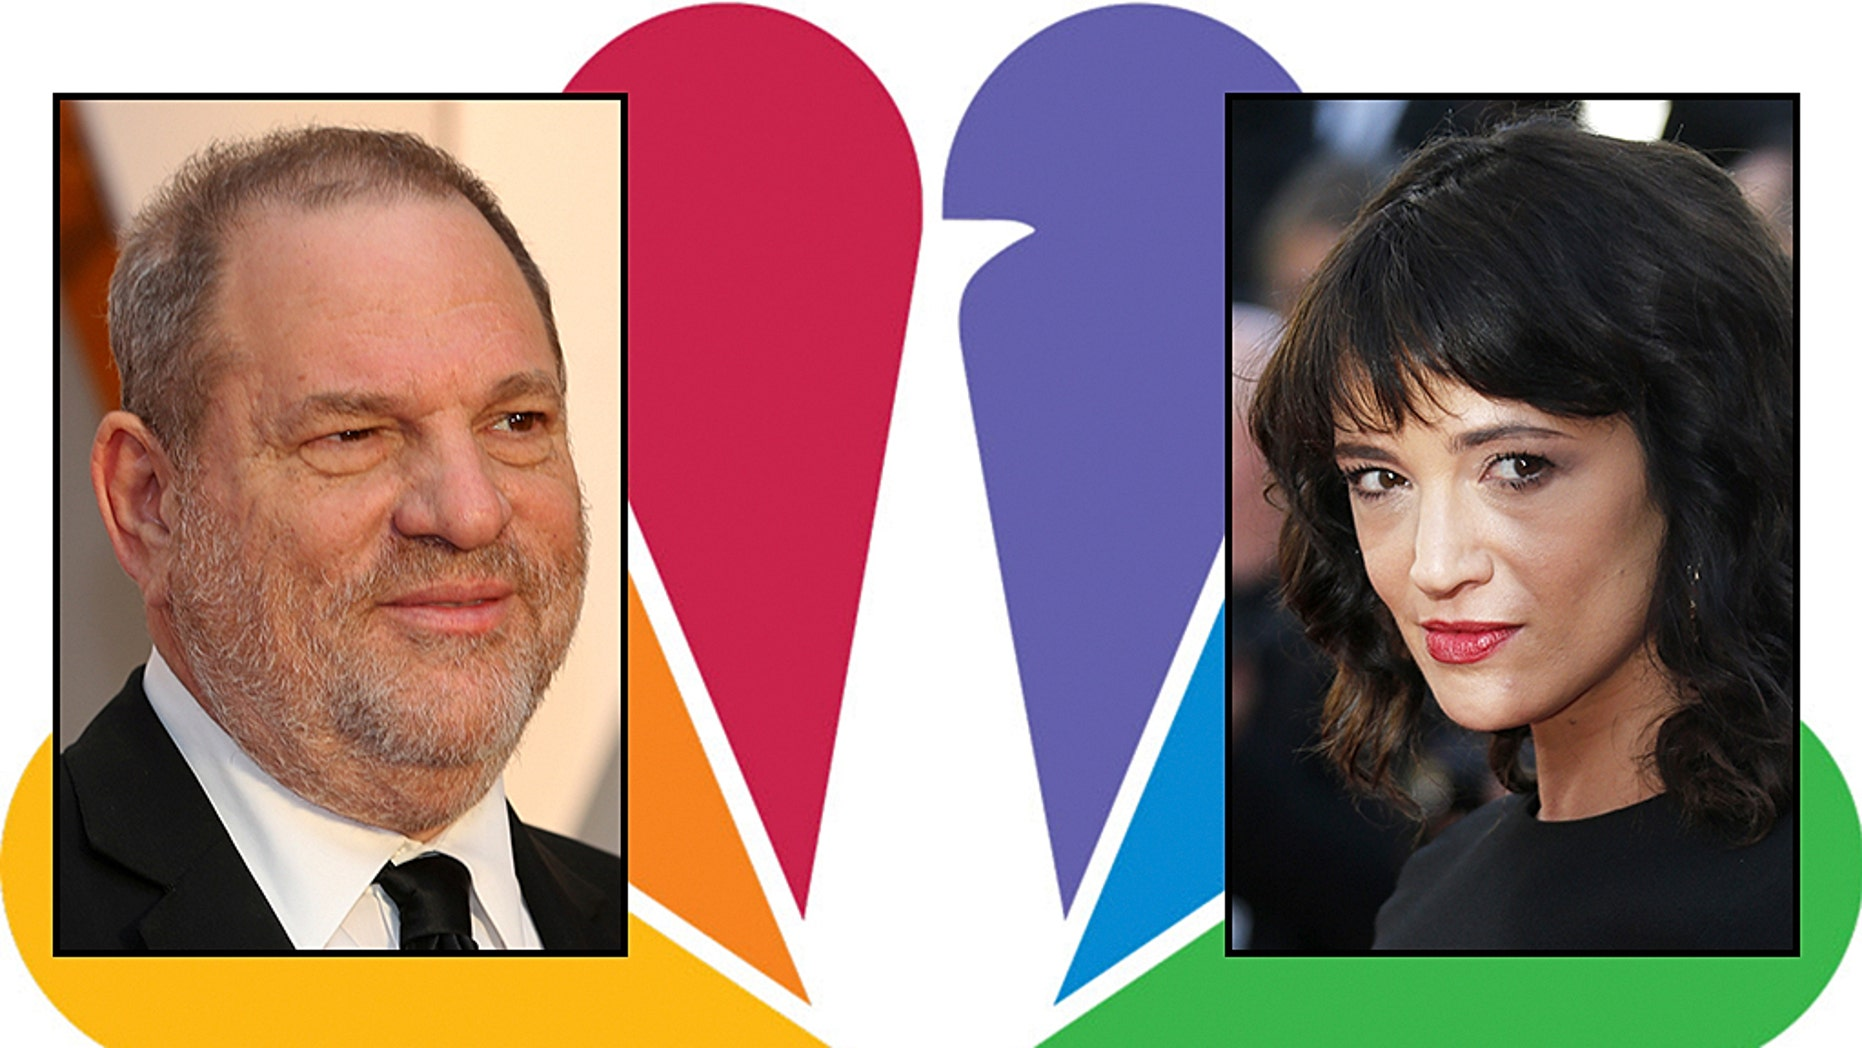 Harvey Weinstein has been accused of sexual assault by numerous women including Asia Argento, who asked why NBC News shut down the story.